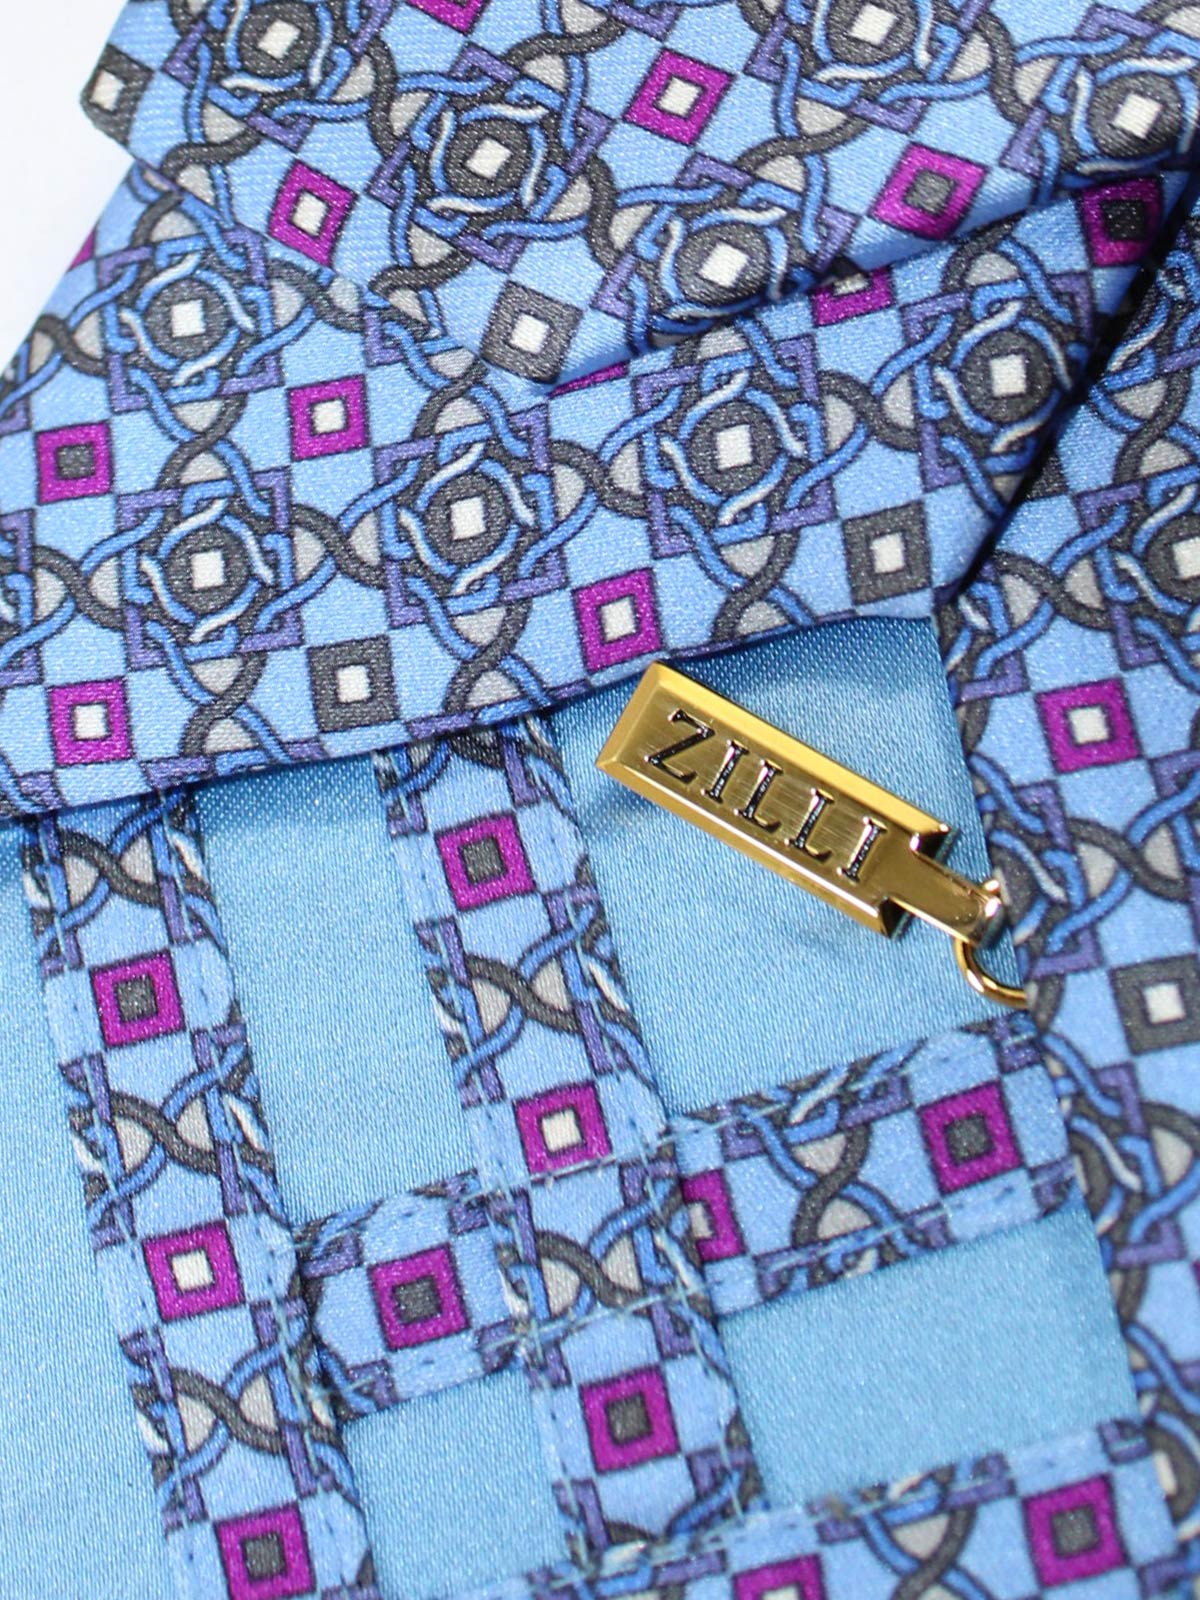 Zilli Silk Tie Blue Fuchsia Gray Geometric Design - Wide Necktie